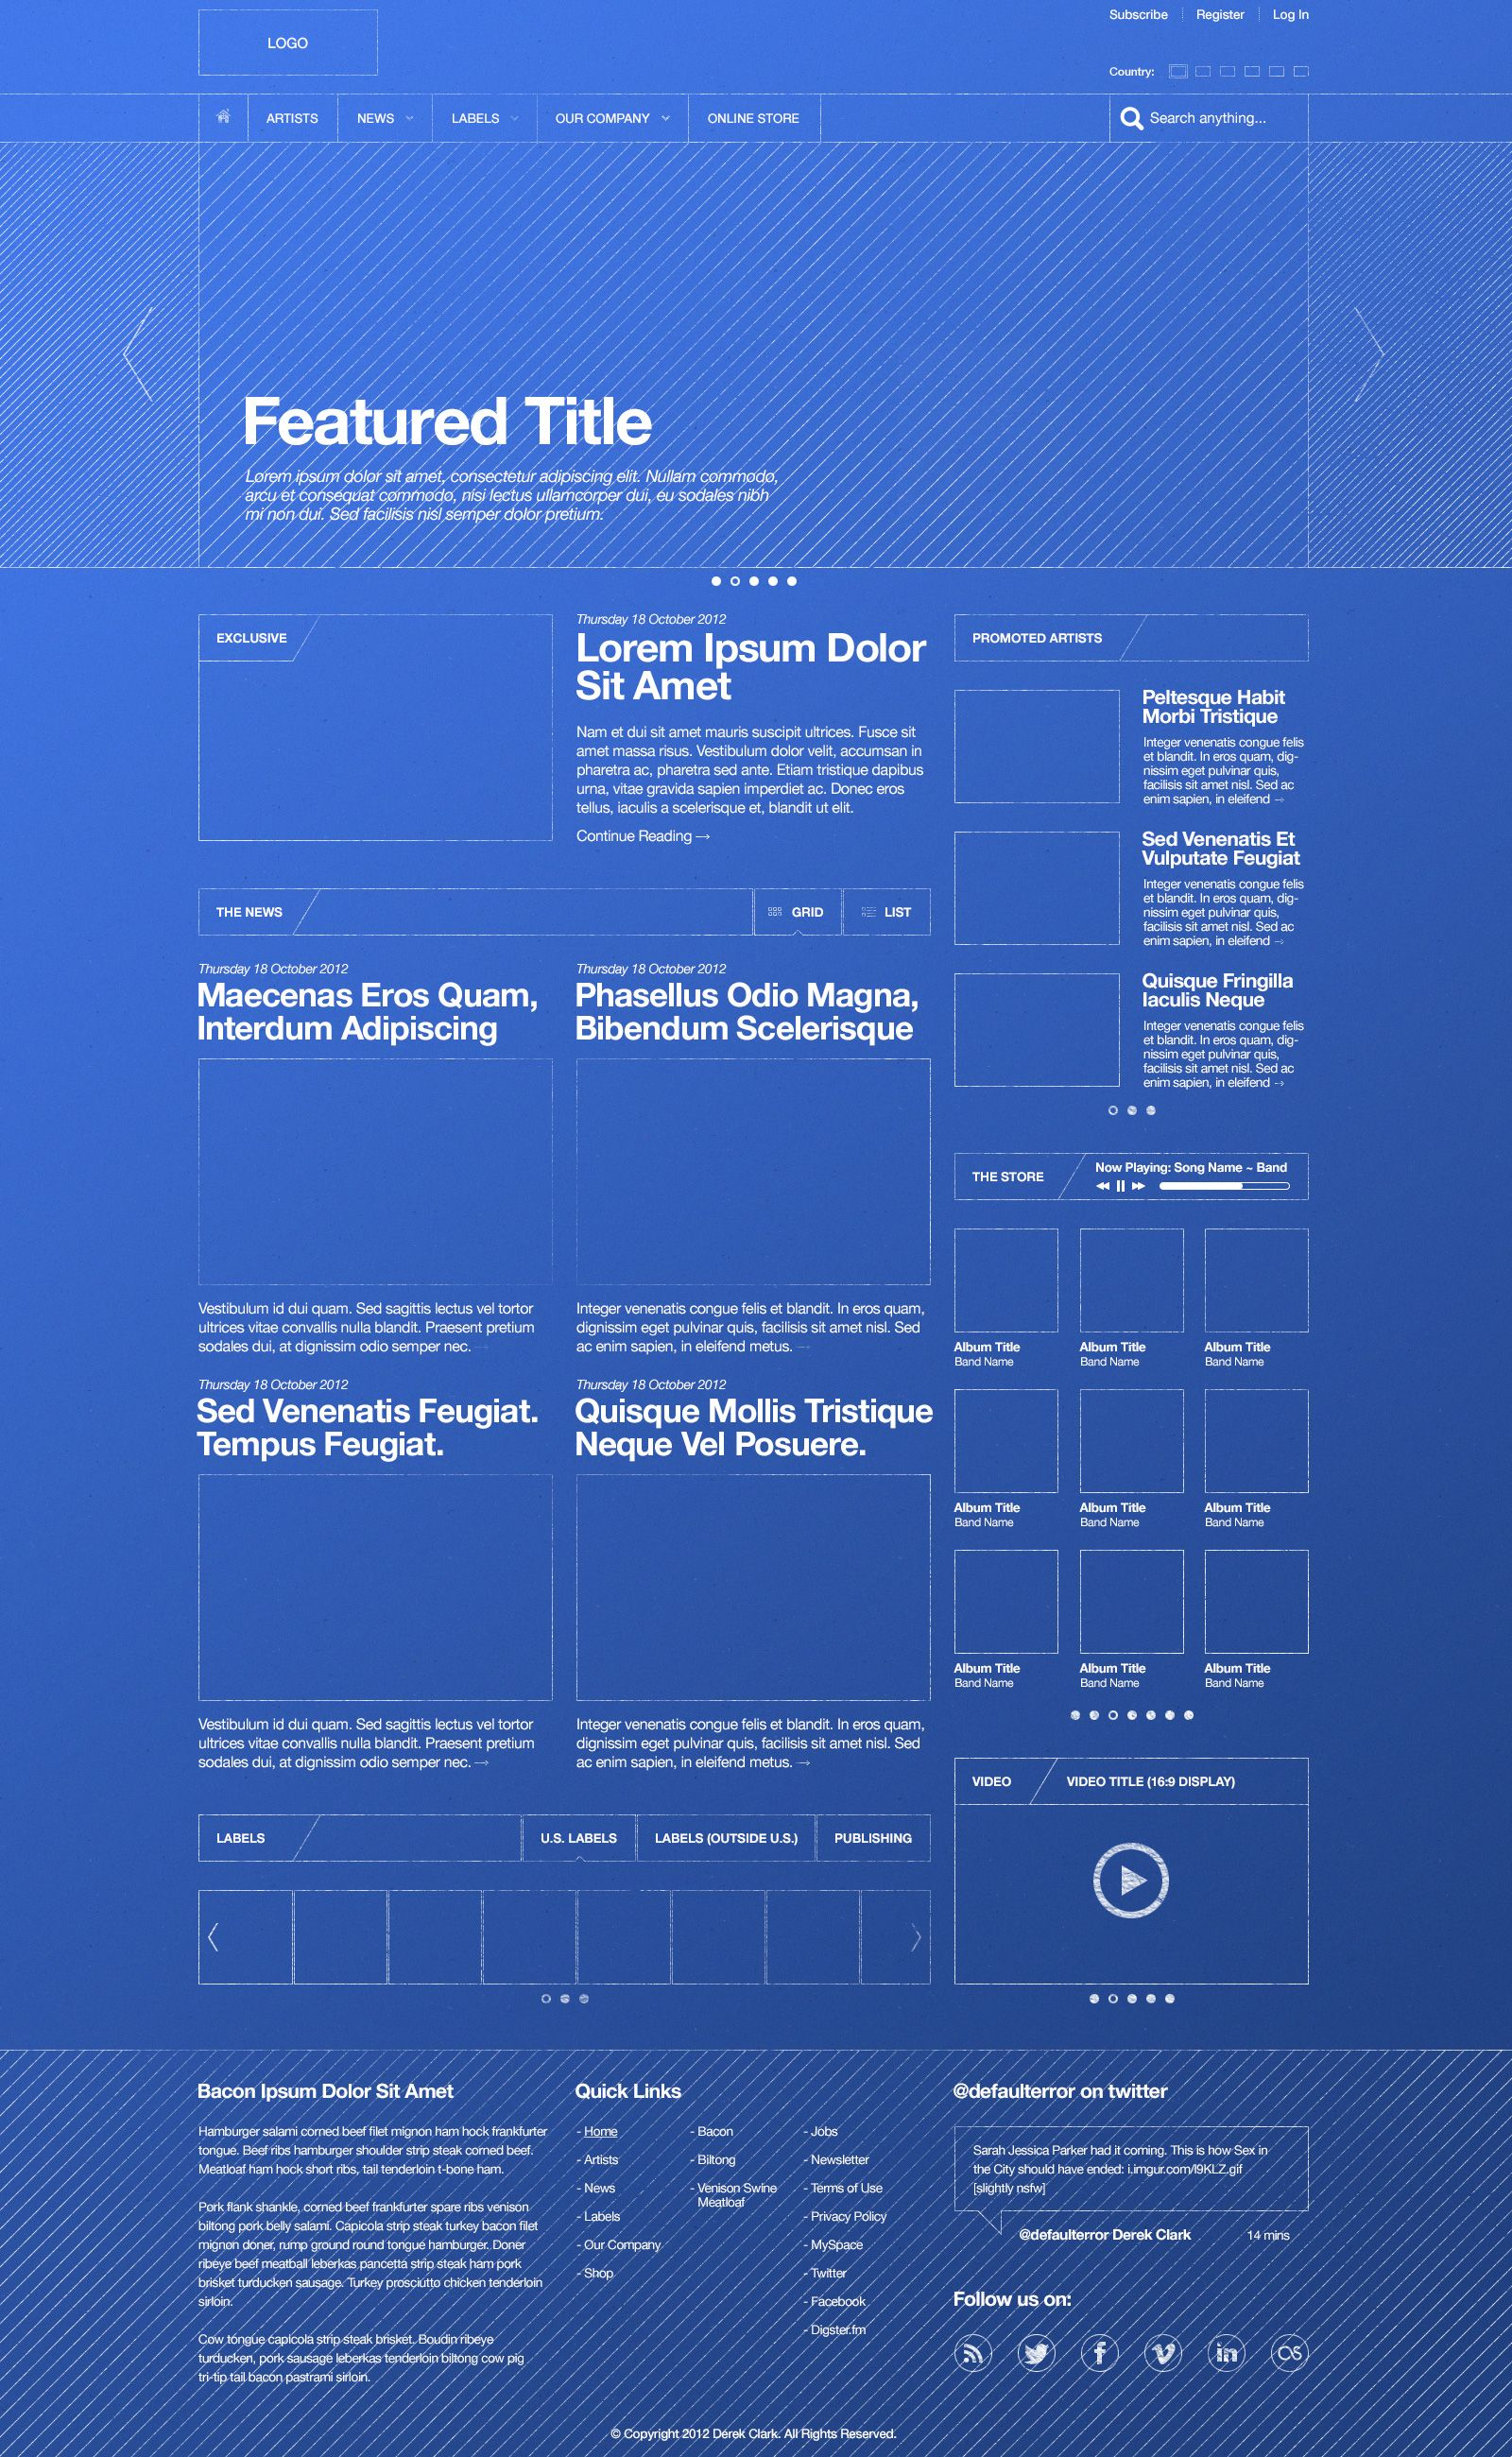 Blueprint themed wireframe designer derek clark ux ui blueprint themed wireframe designer derek clark malvernweather Choice Image